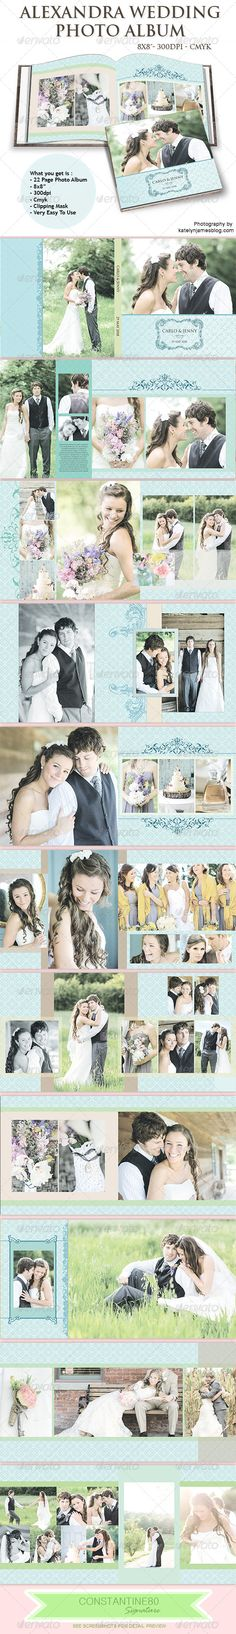 "Alexandra Wedding Photo Album  #GraphicRiver            	   	 What you get is :  	 Photo Album 8""x8"" Color mode: CMYK Resolution: 300 DPI Total Dimensions: 4838×2438px  	 Total is 11 items  —-—-—-—-—-—-—-—-—-—-—-—-—-—-—-—-—-—-—-—-—-- Fonts used: Trajan Pro  .myfonts /fonts/adobe/trajan/ PLEASE DON 'T FORGET TO RATE THIS FILE  	     	      Created: 2August13 GraphicsFilesIncluded: PhotoshopPSD Layered: Yes MinimumAdobeCSVersion:"